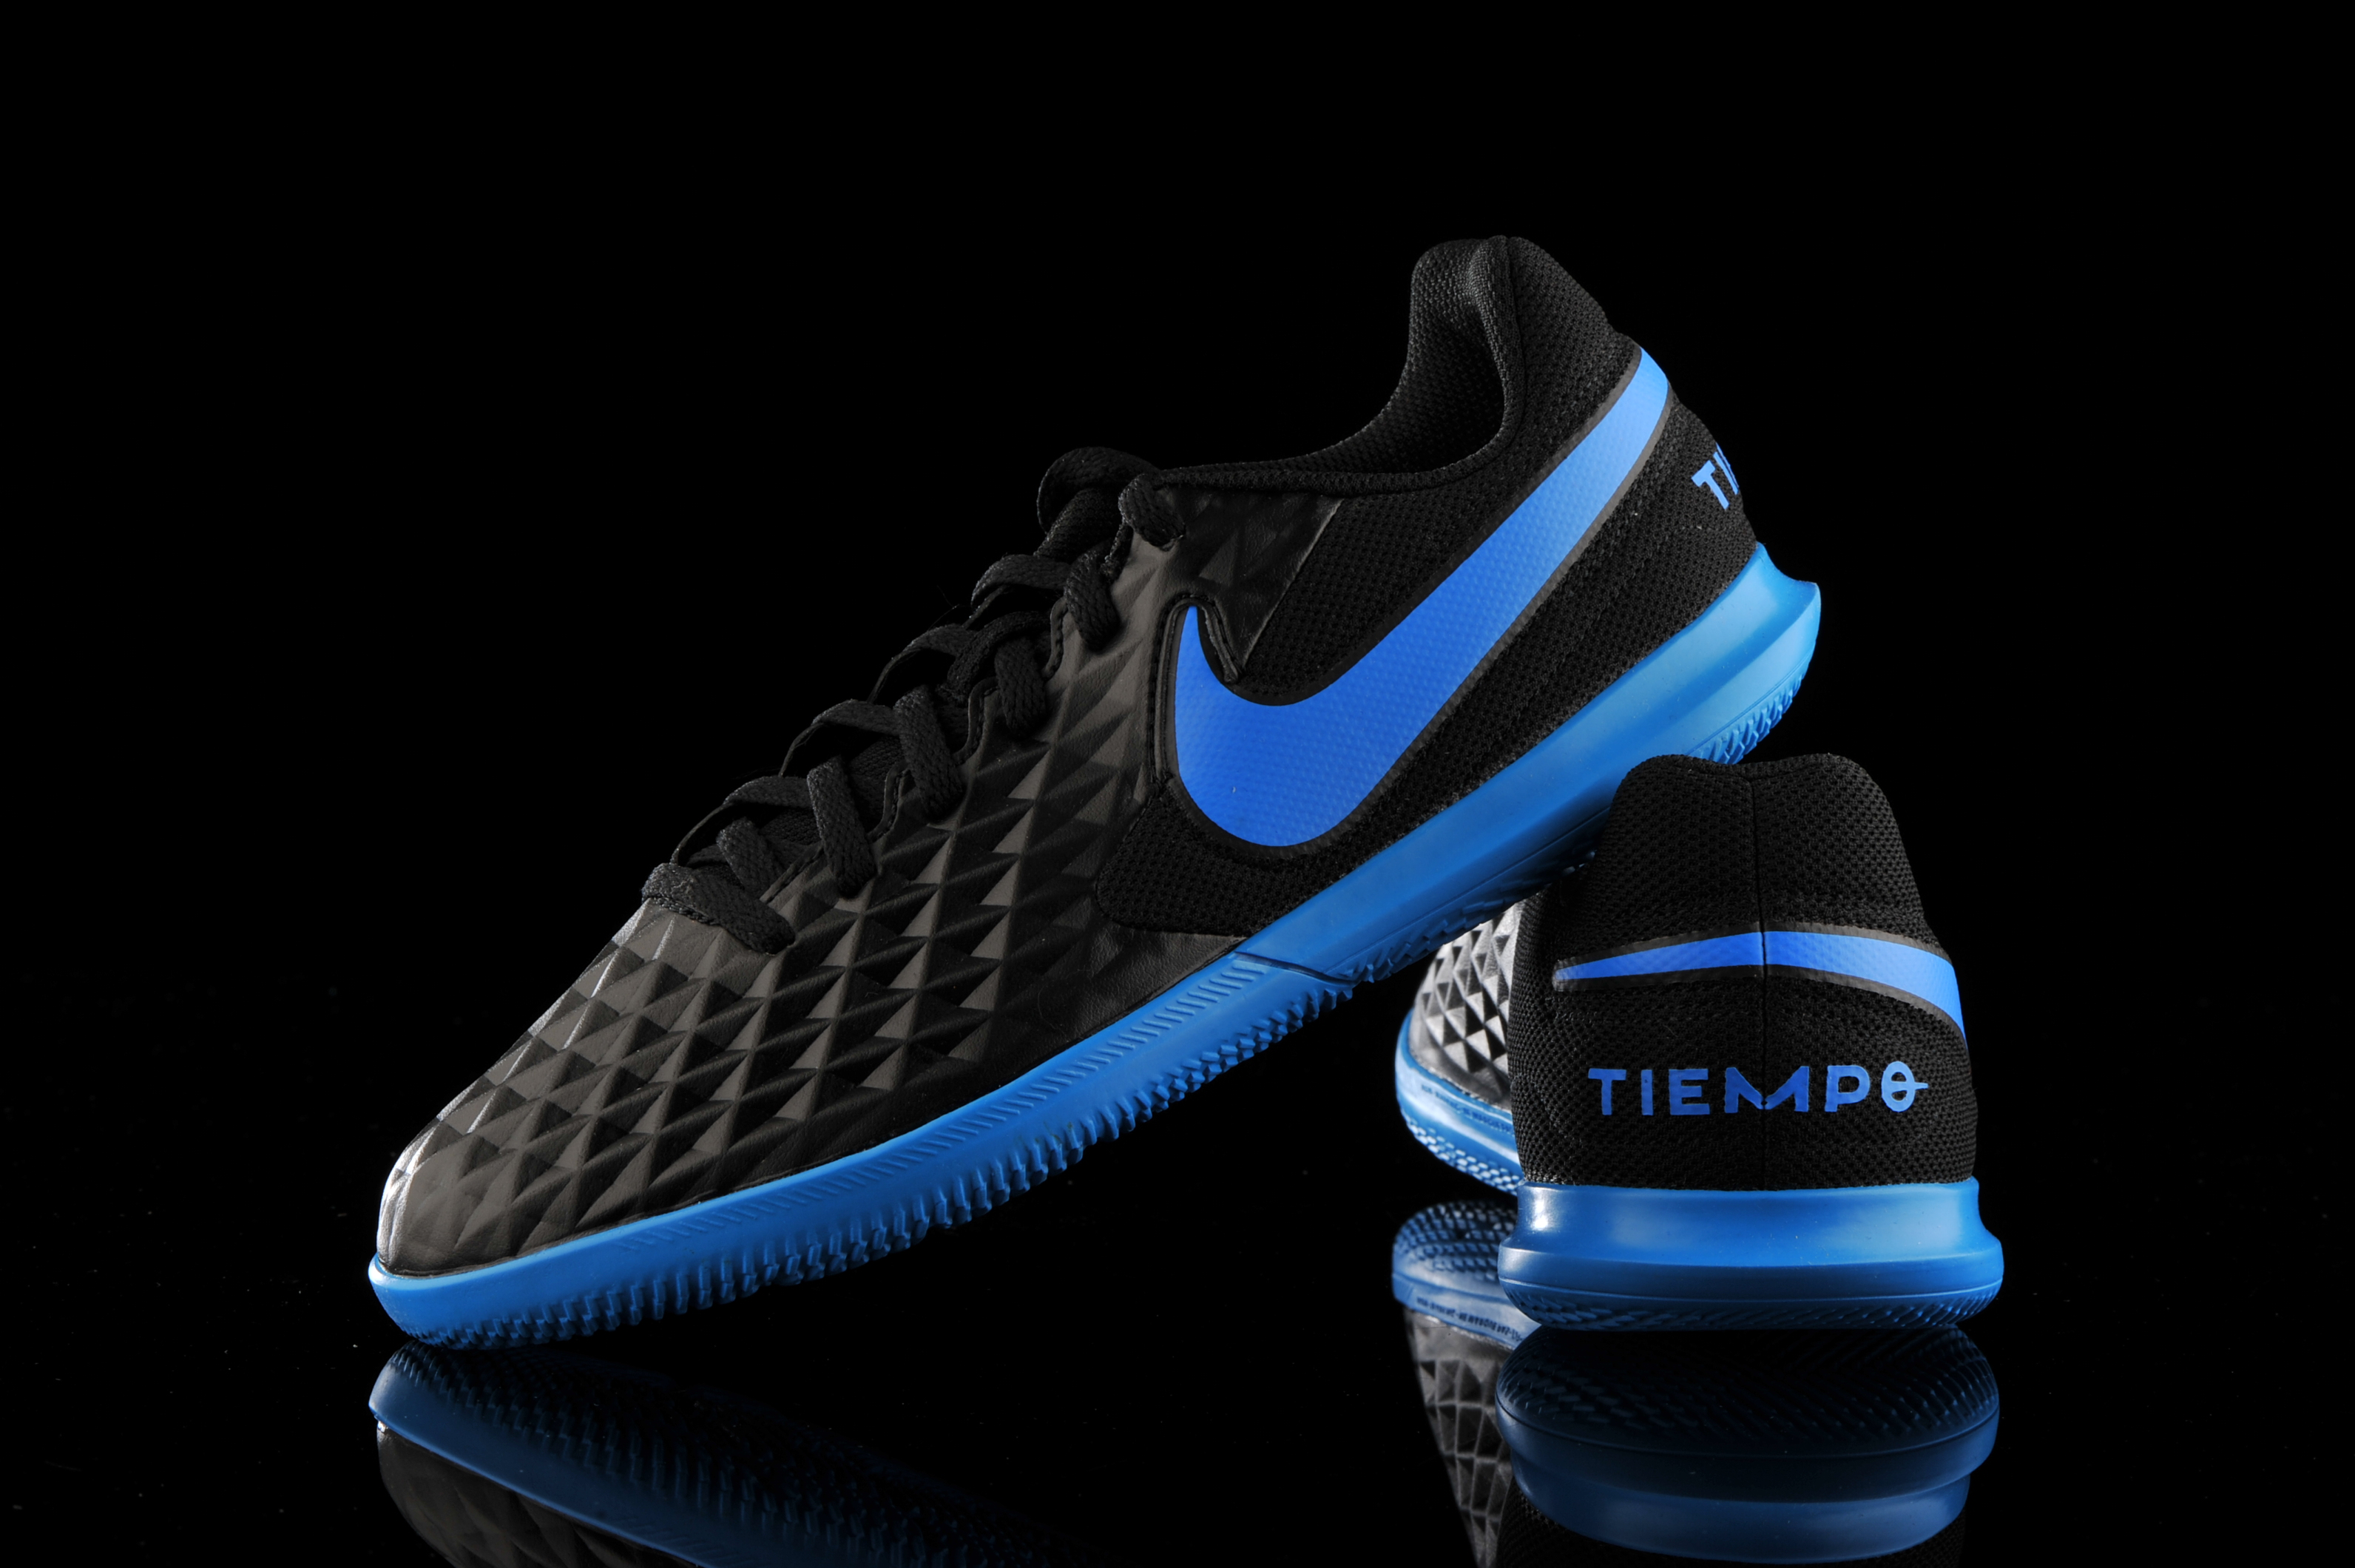 Comprometido Estúpido sostén  Nike Tiempo Legend 8 Club IC Junior AT5882-004 | R-GOL.com - Football boots  & equipment